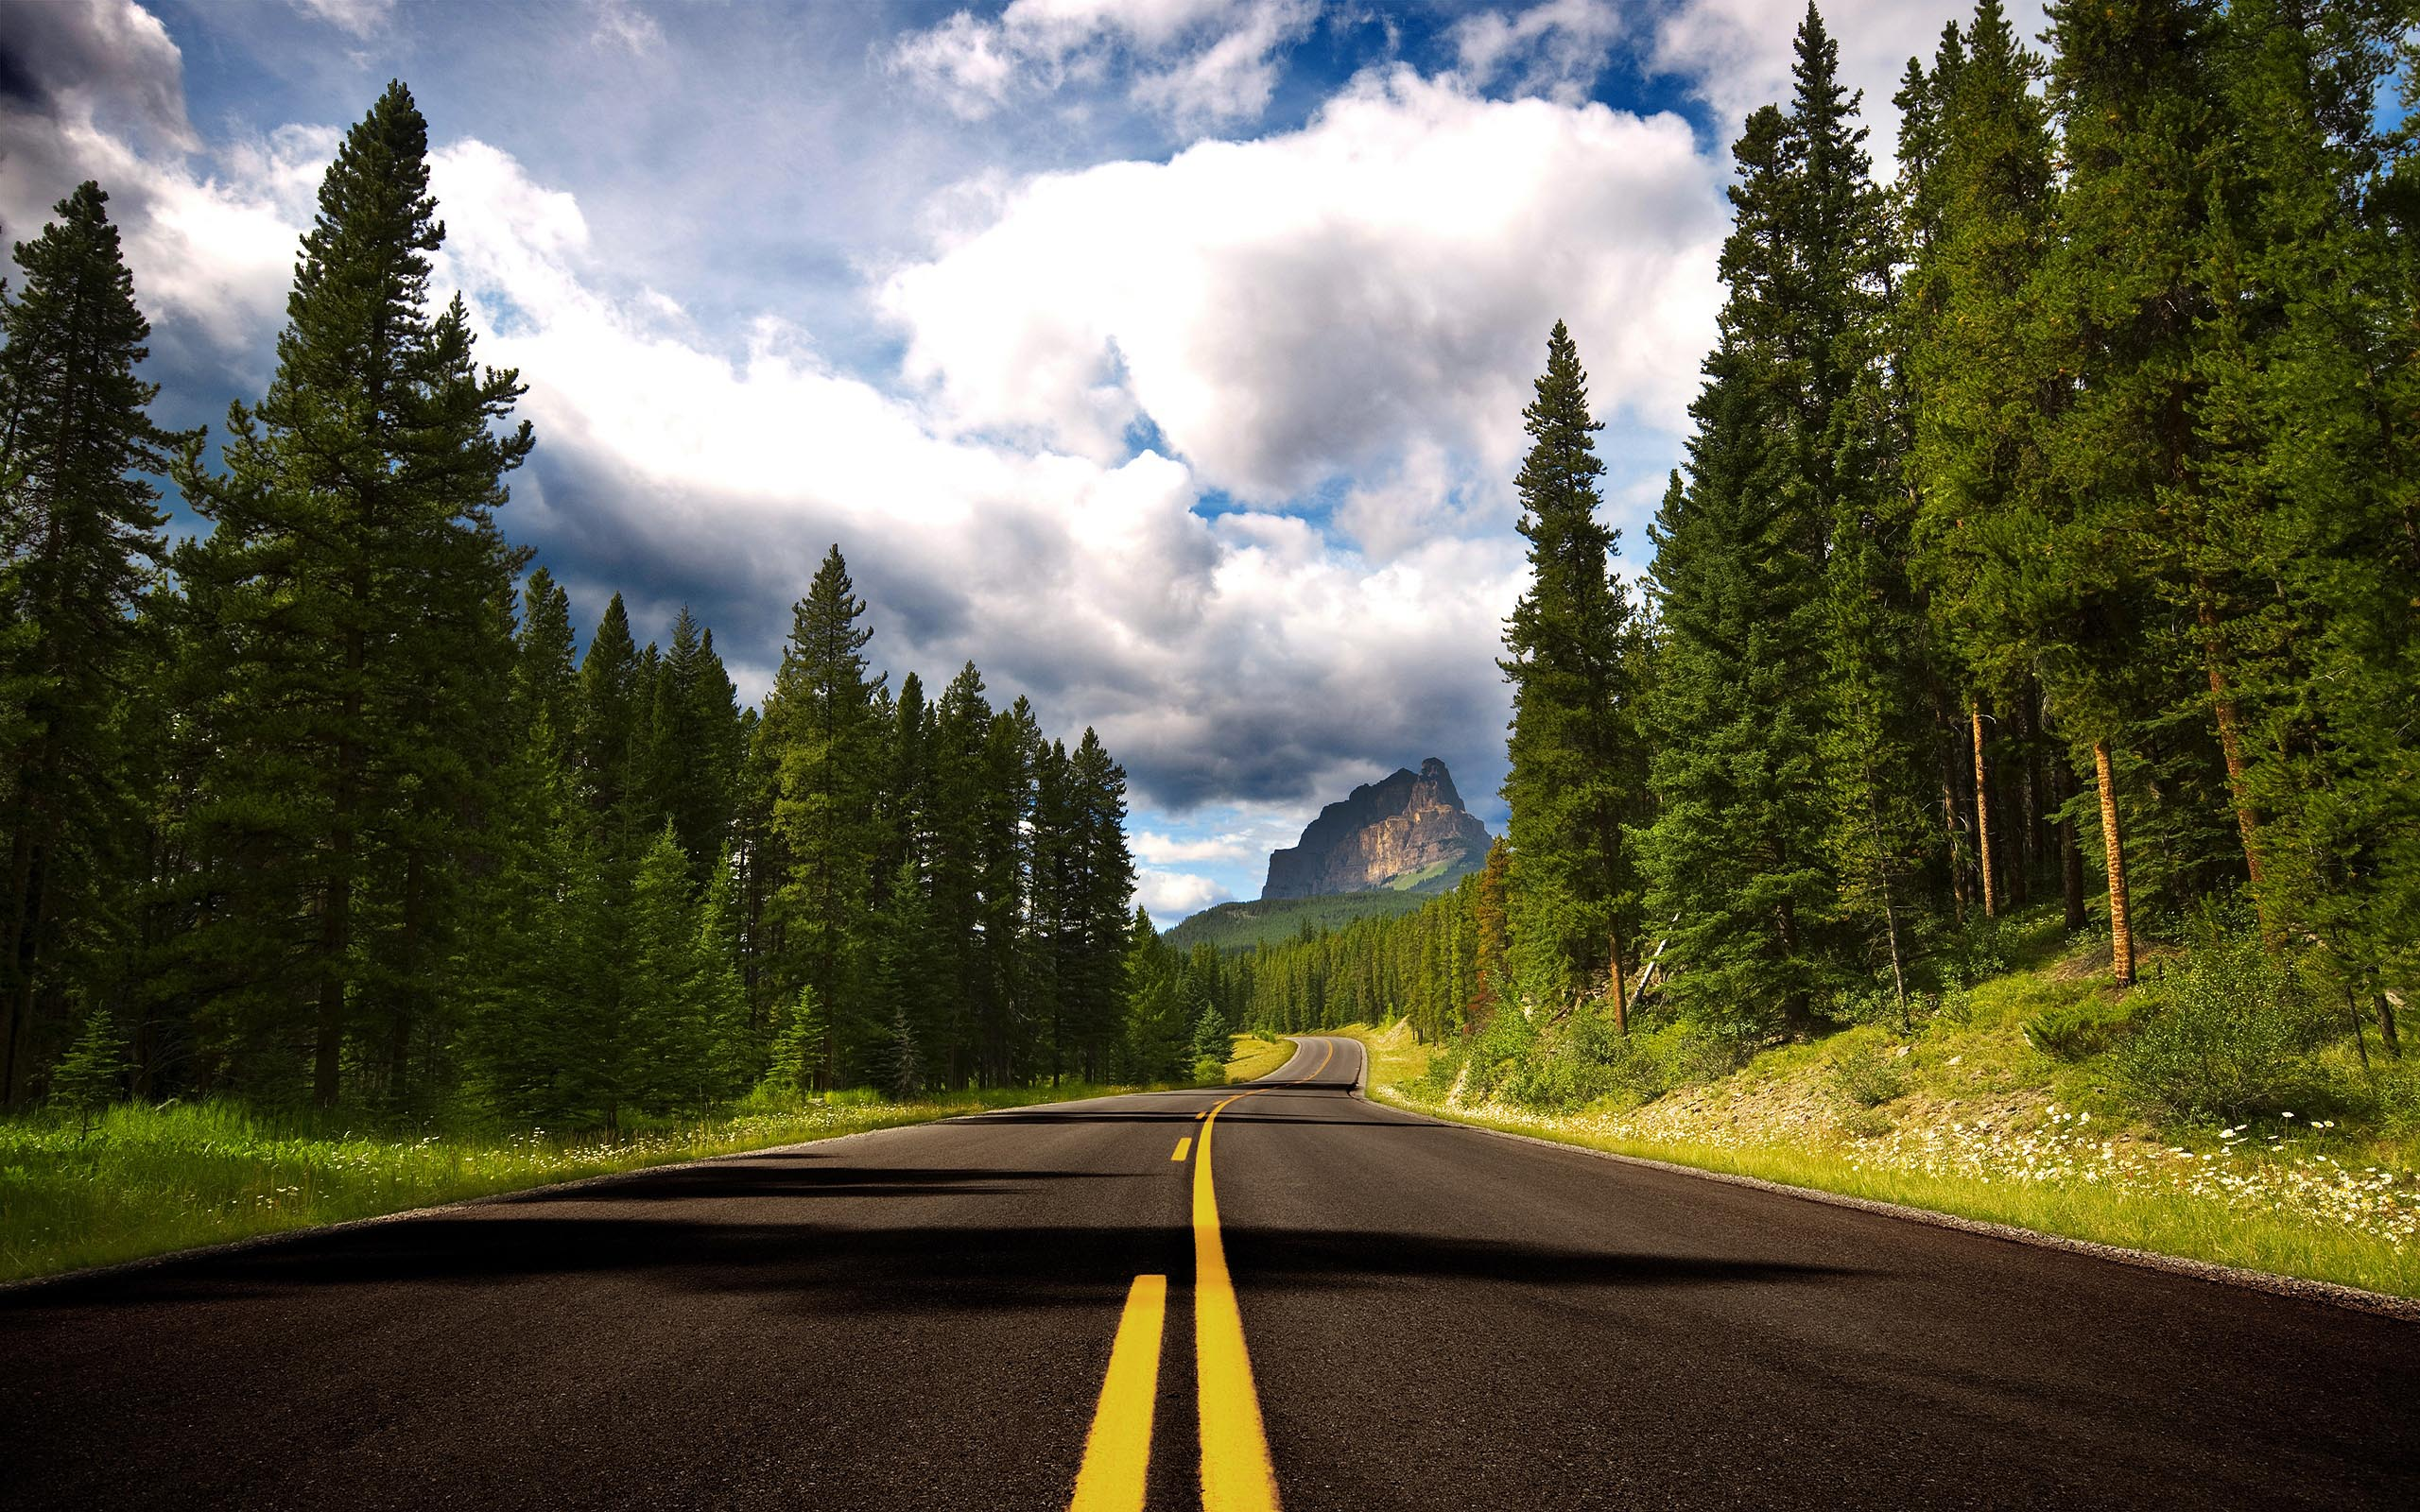 The road ...